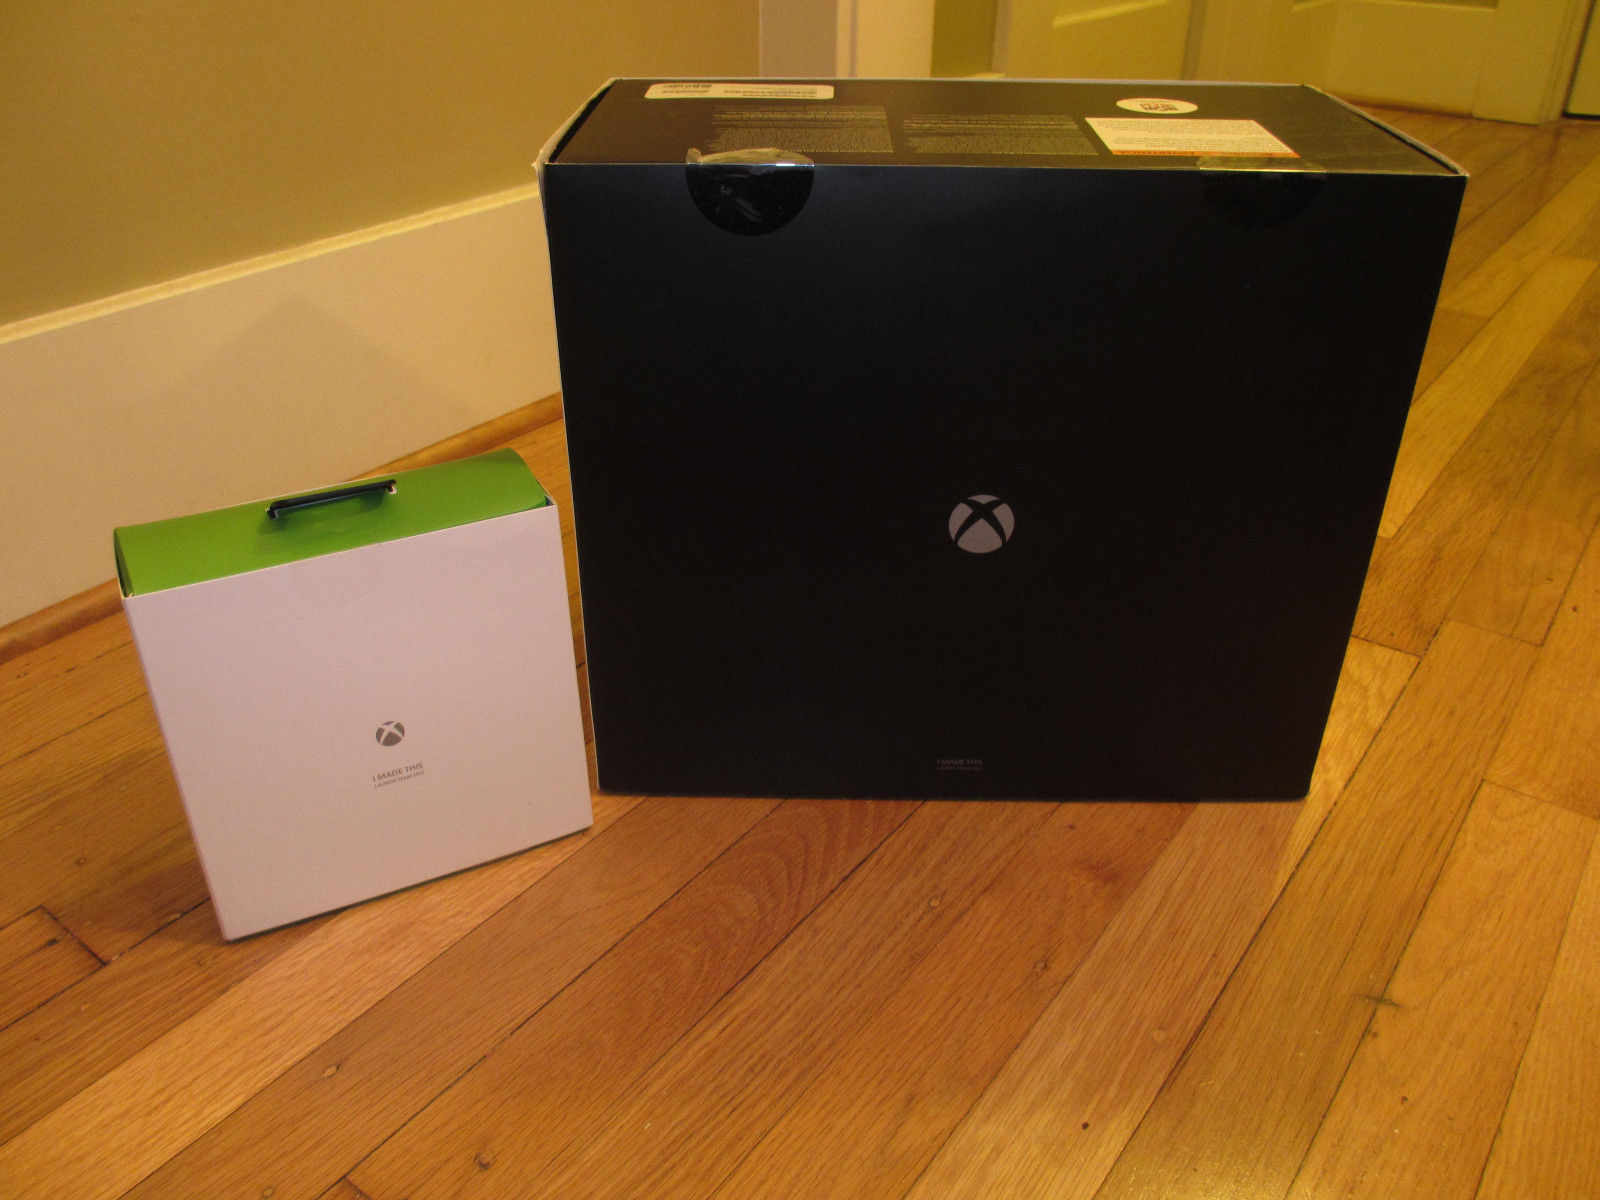 Xbox One White Console Appears On Ebay At 2 700 Vg247